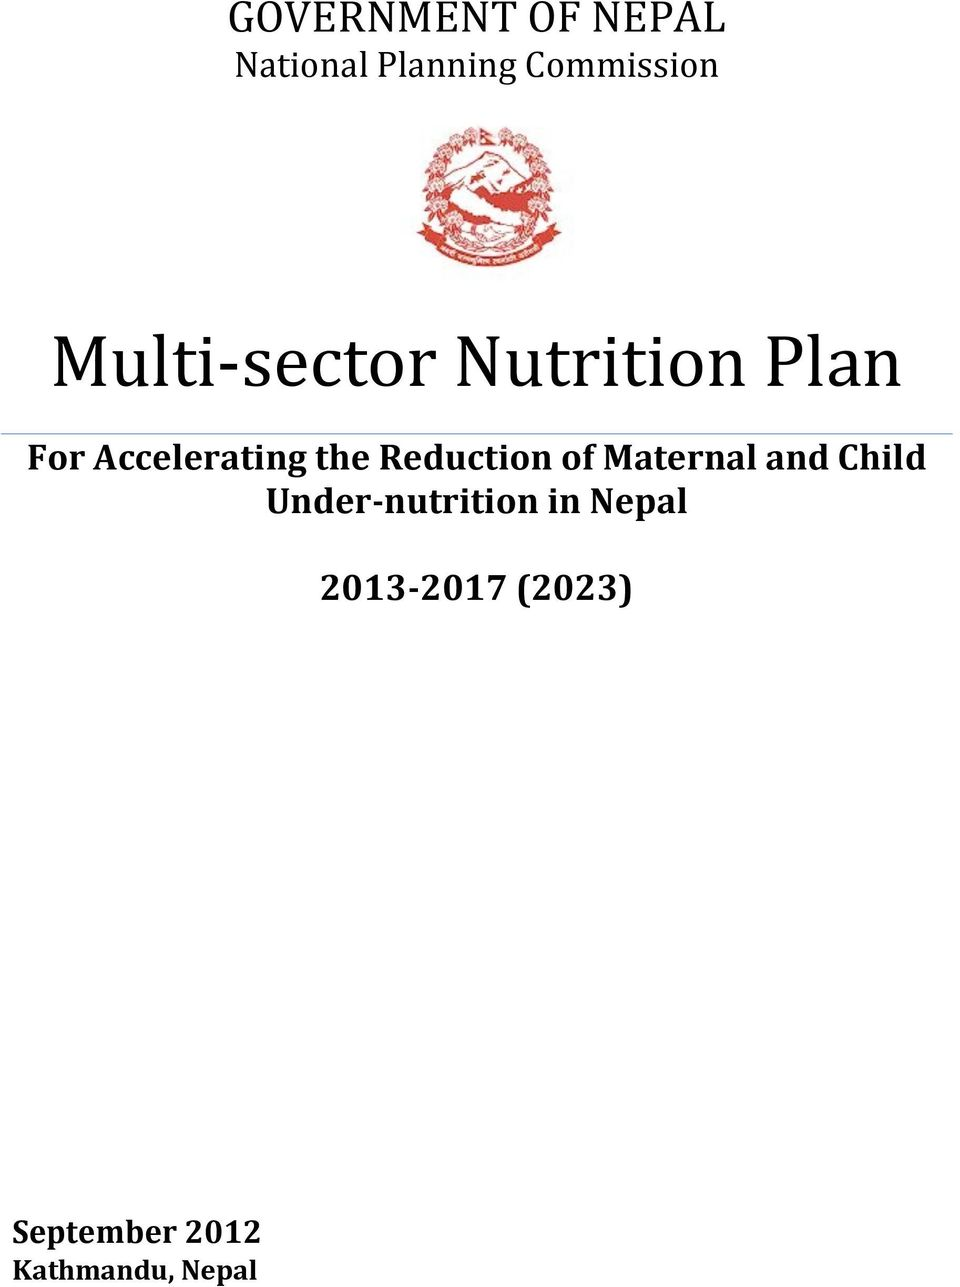 Reduction of Maternal and Child Under-nutrition in